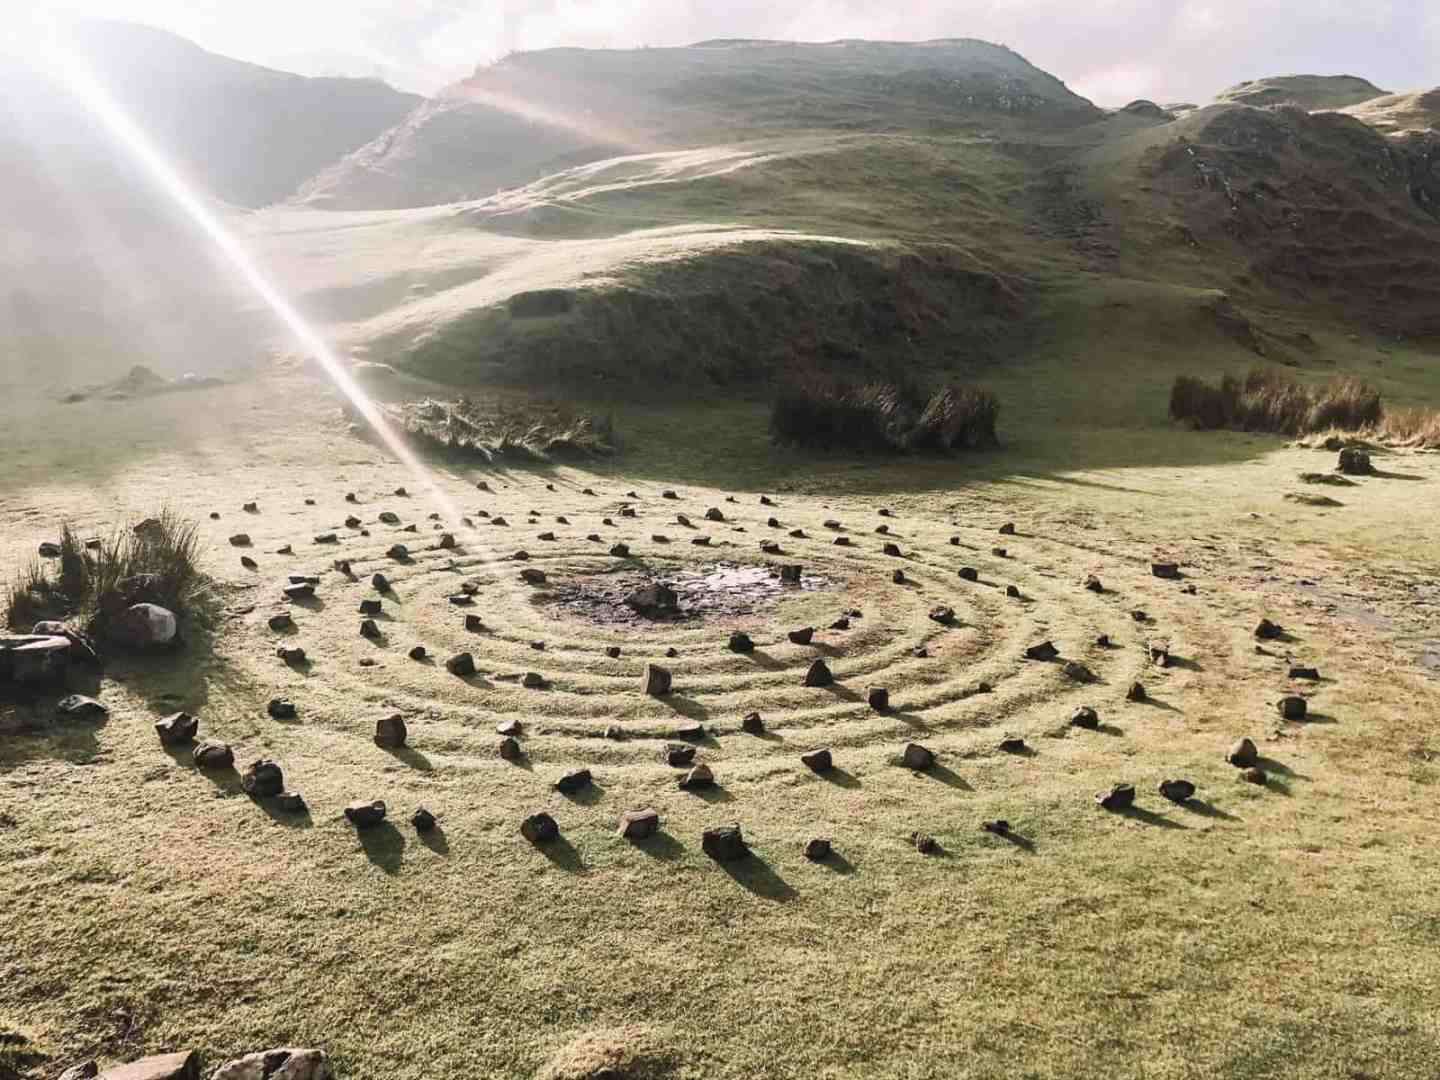 The sunsetting over a grassy field surrounded by rocks and a rock circle in the middle of the field